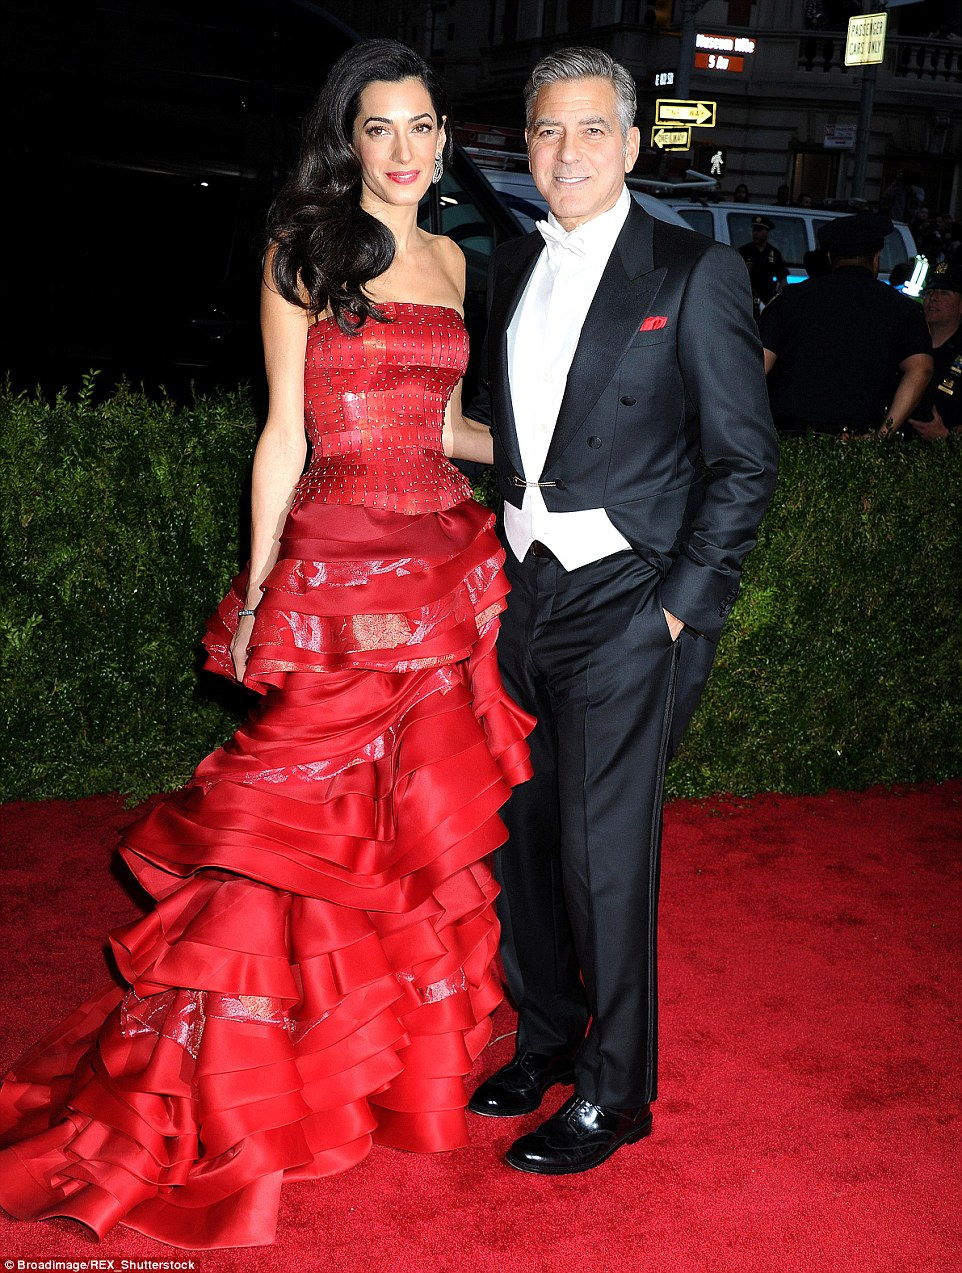 Burgeoning property empire: Amal Clooney with her movie star husband George now own a host of properties